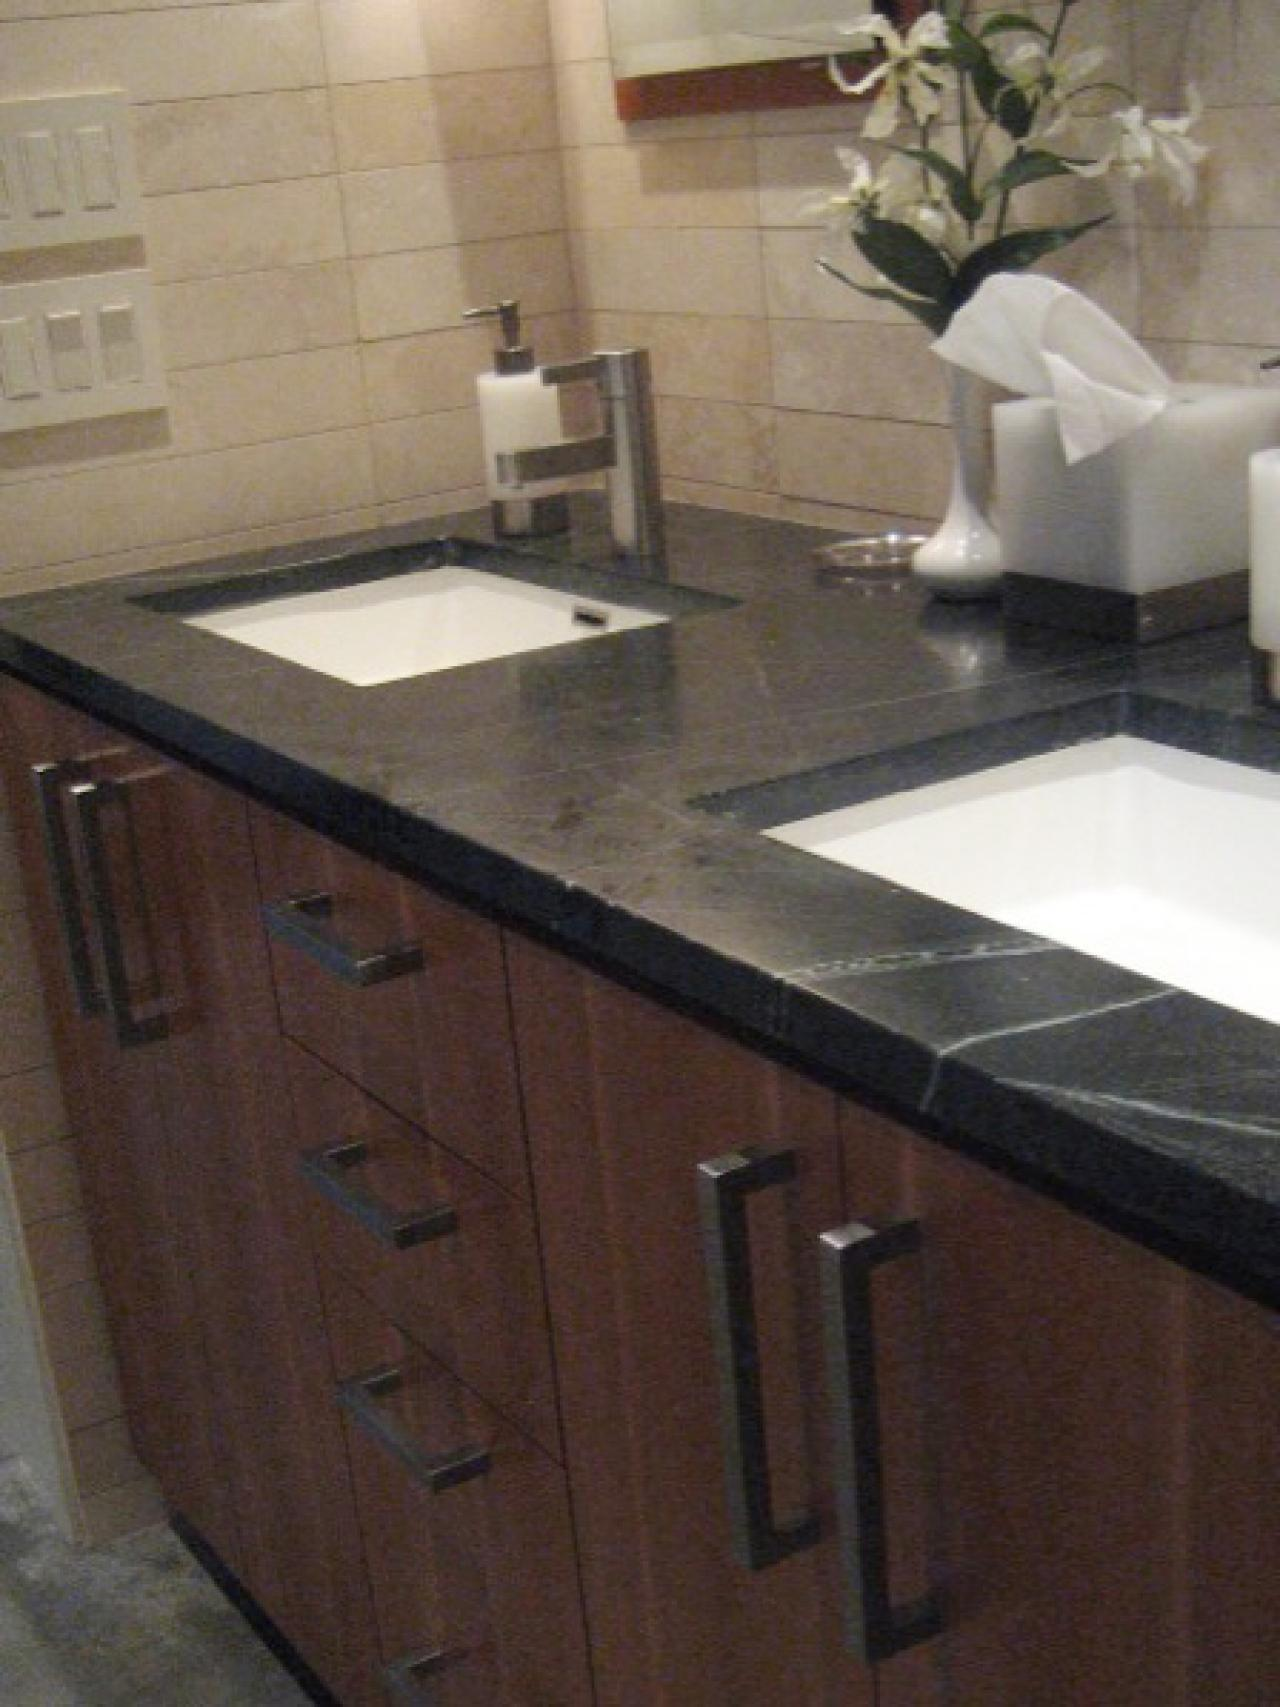 Bathroom Countertop Surface Options : Bathroom Countertop Buying Guide HGTV